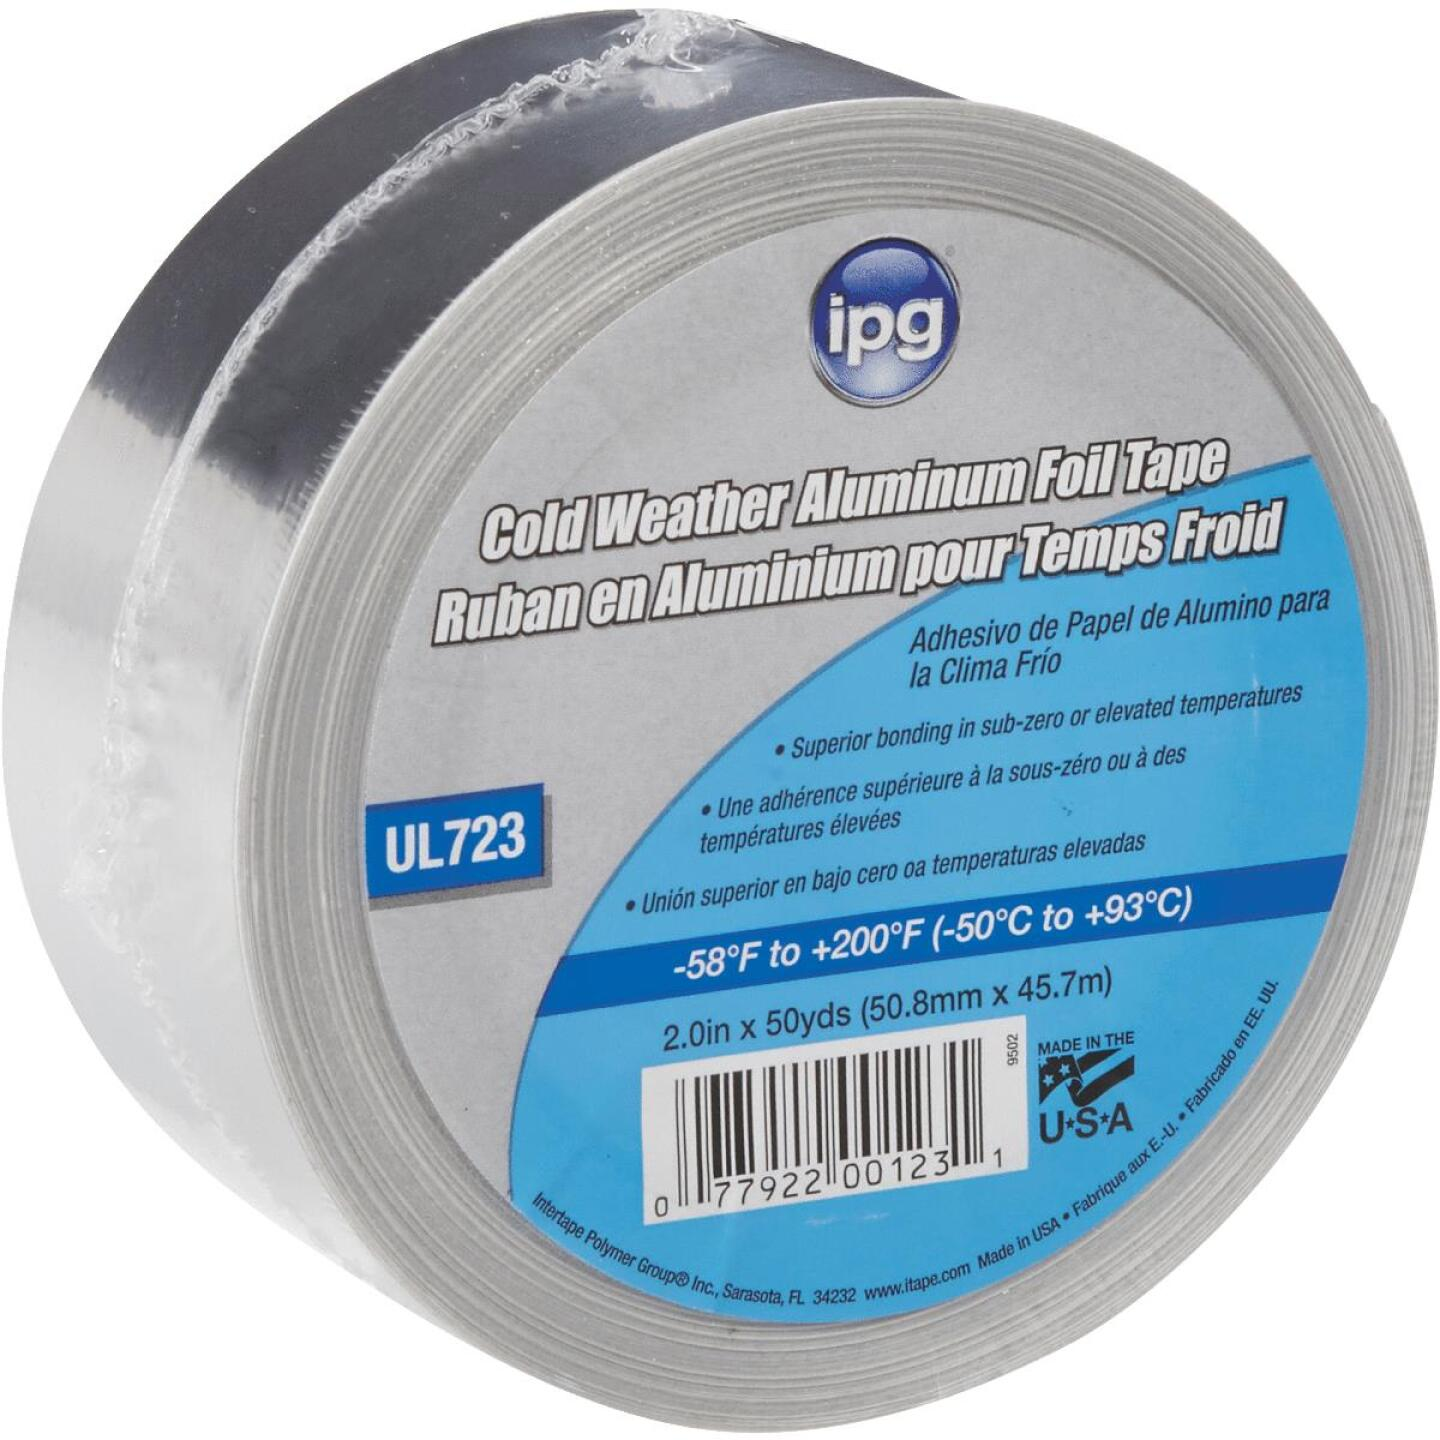 Intertape 2 In. x 50 Yd. UL723 Cold Weather Aluminum Foil Tape Image 1